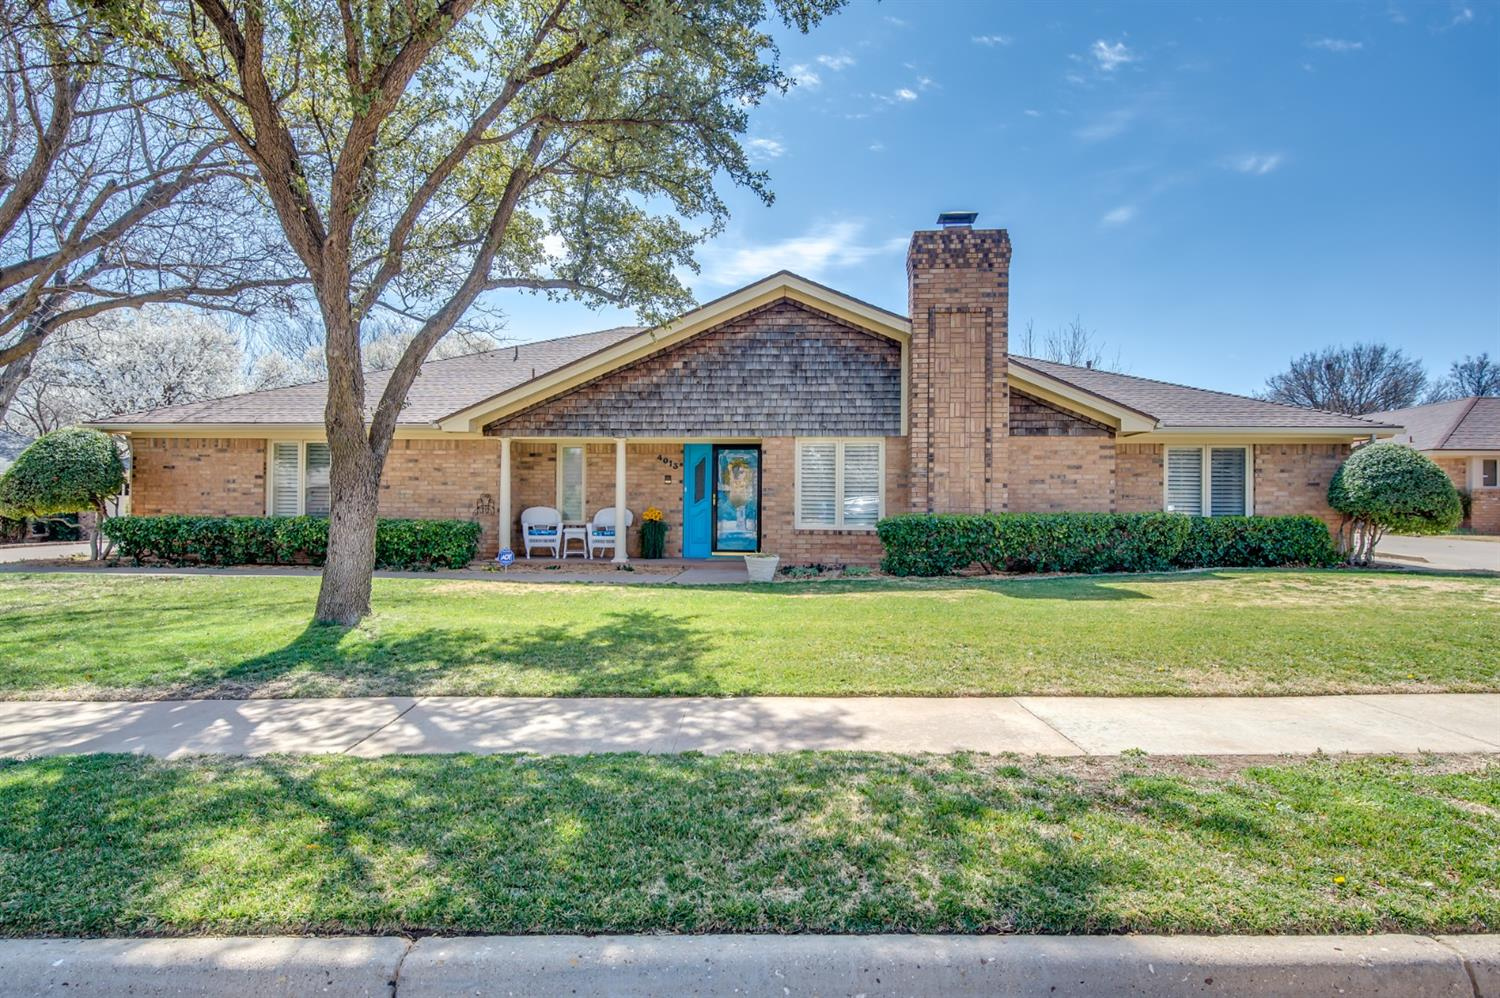 Basement homes for sale in lubbock real estate in lubbock for Houses with basements in texas